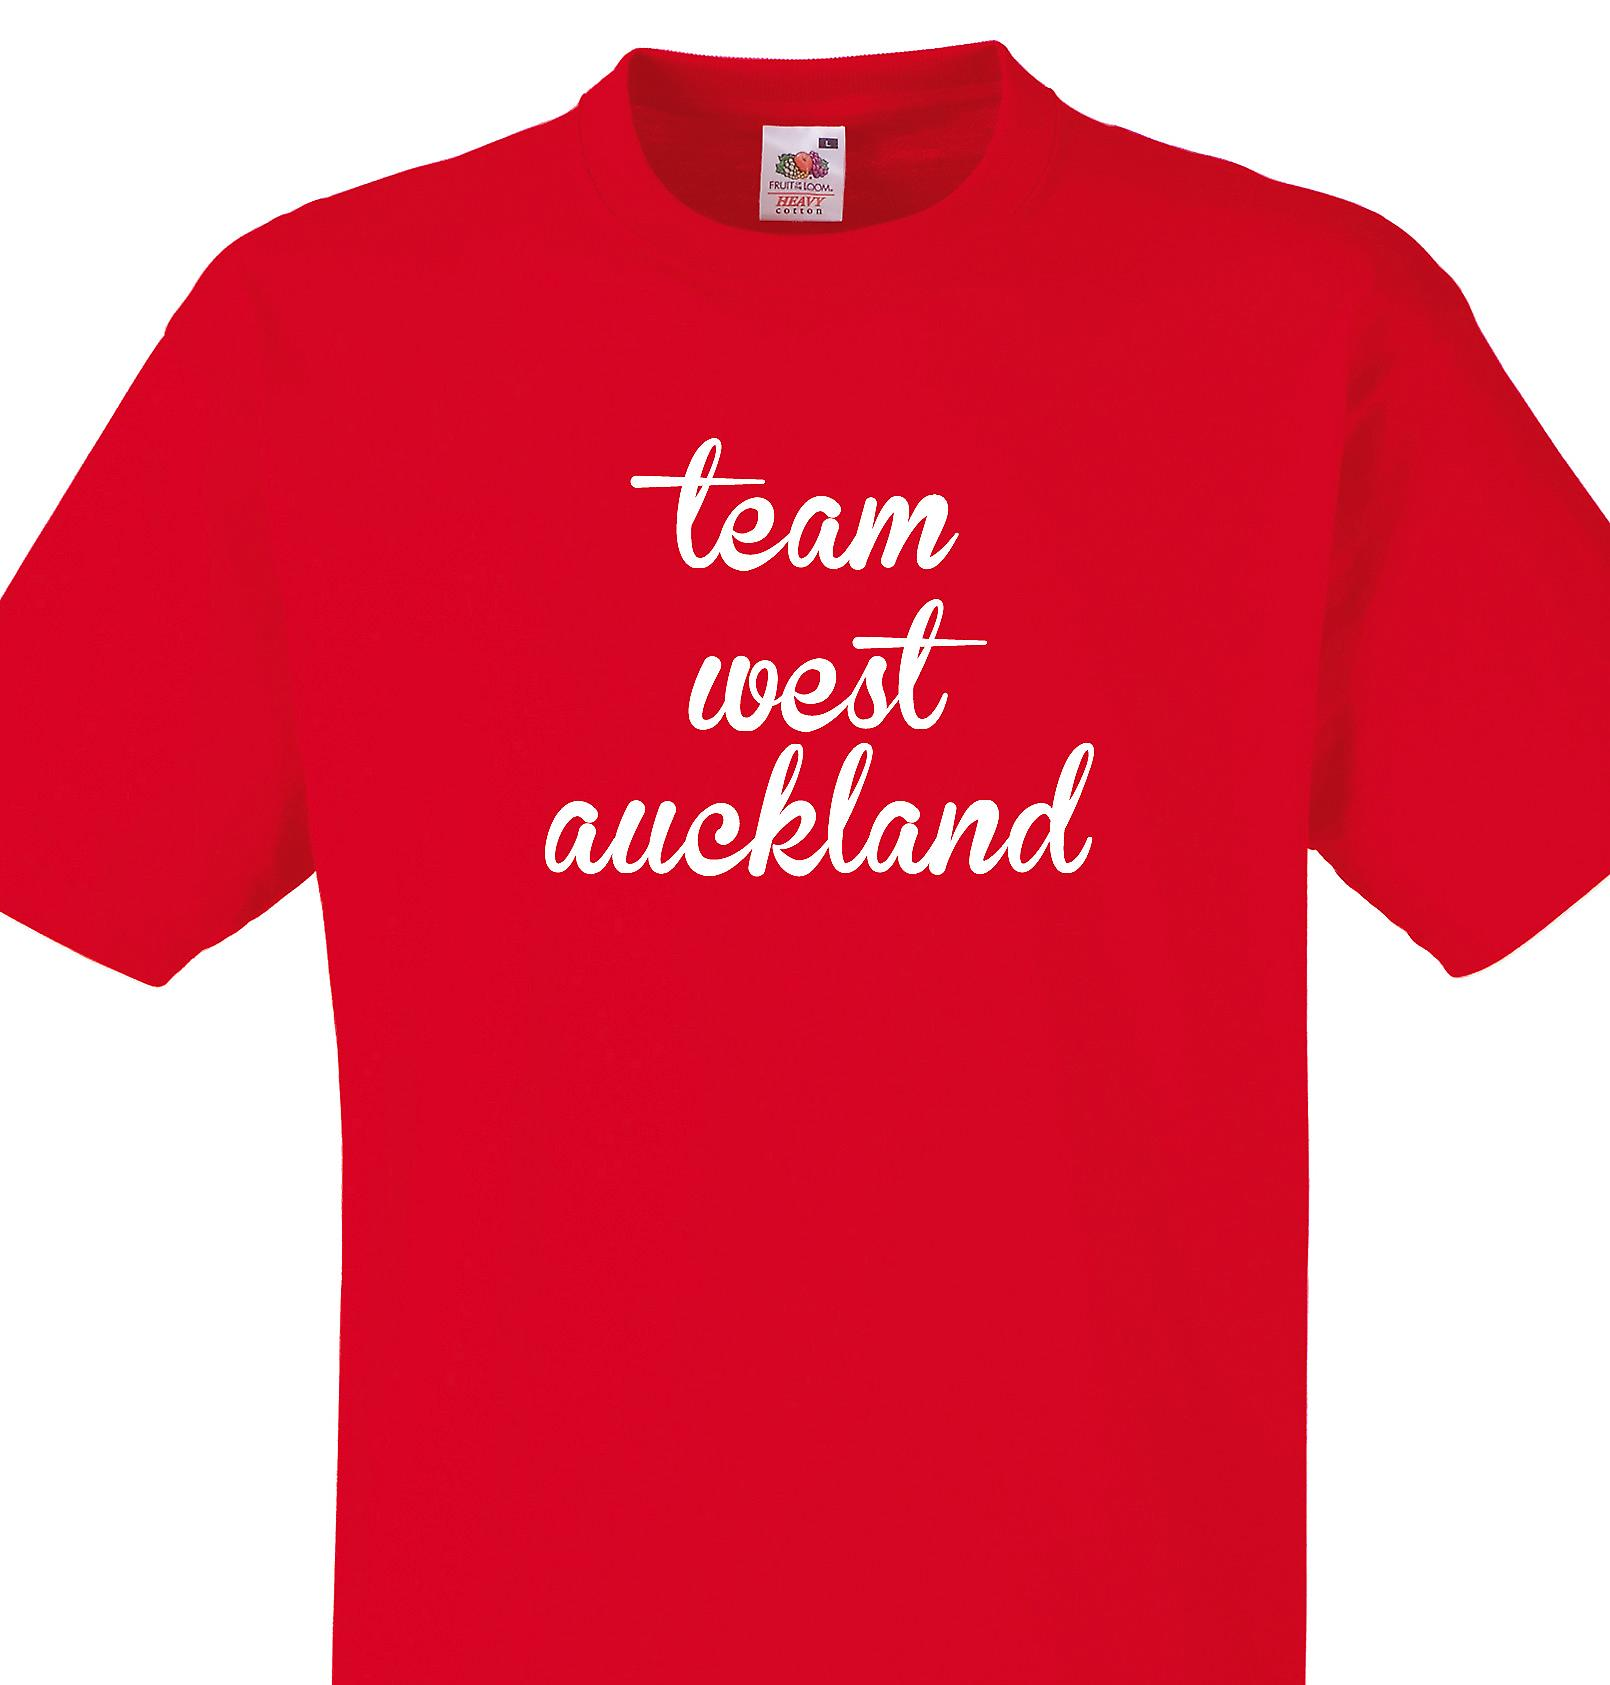 Team West auckland Red T shirt